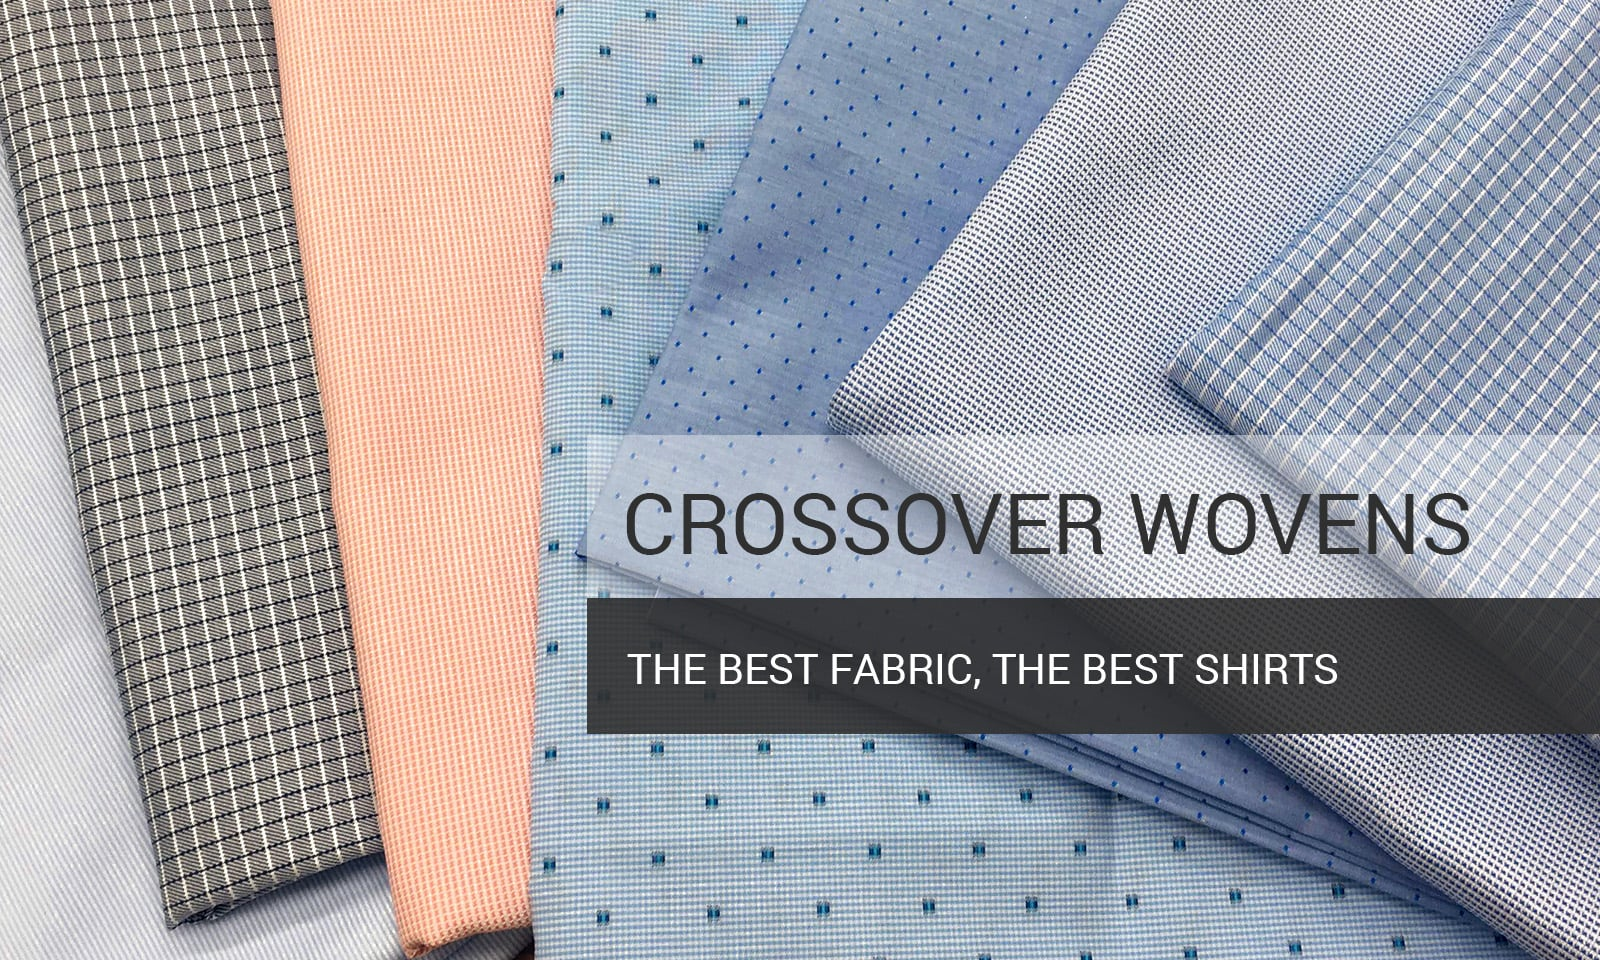 Crossover Wovens - The Best Fabrics - The Best Shirts